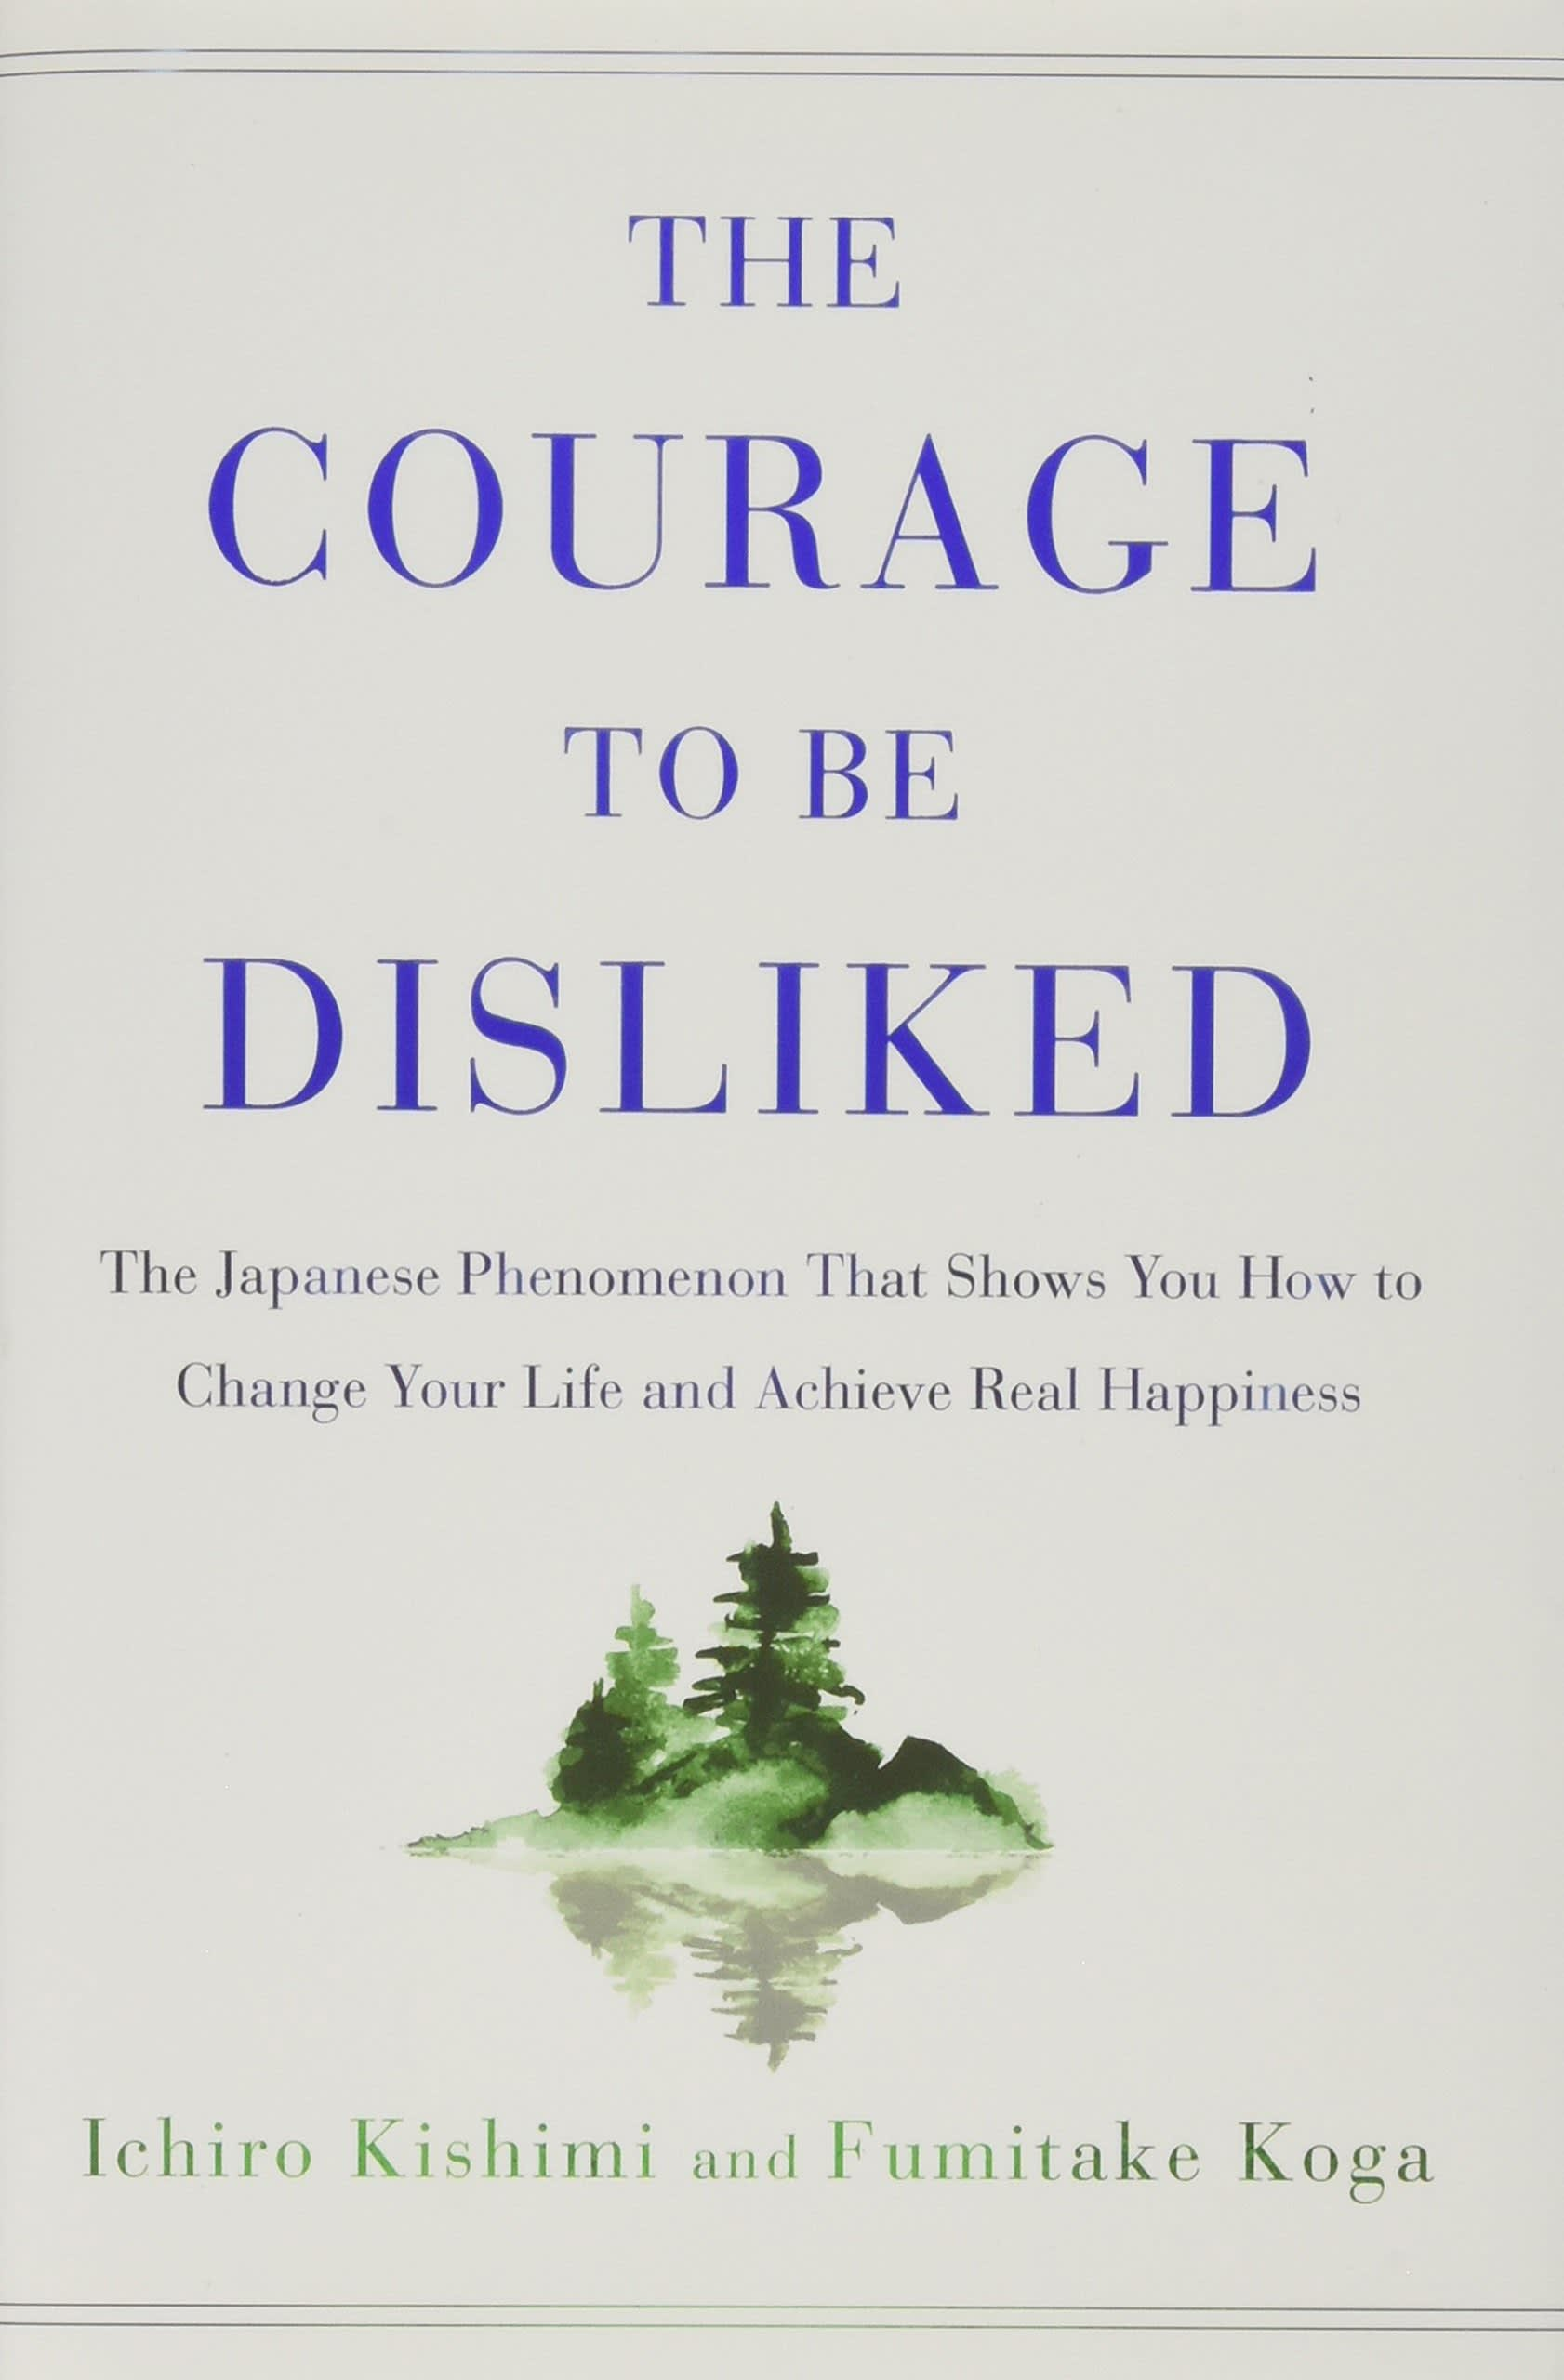 One time use: Book cover the courage of being disliked